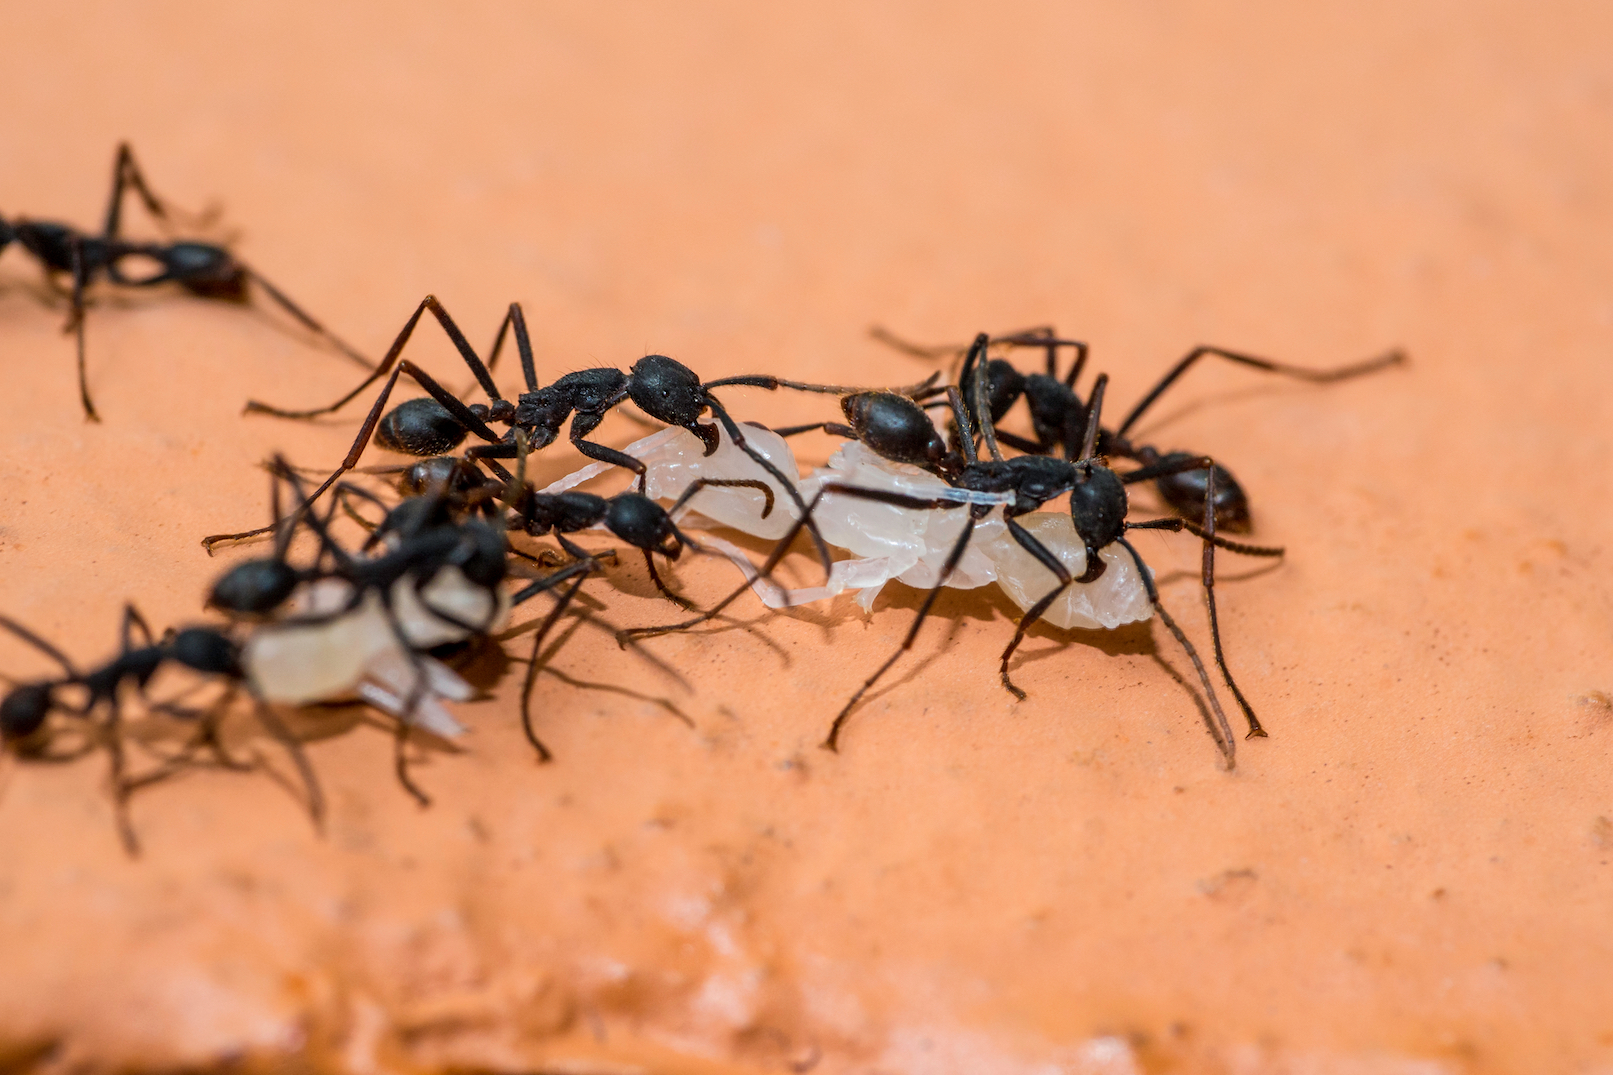 Army ant soldiers may be bigger than other ants in the group, but it turns out their brains are relatively small for their size.